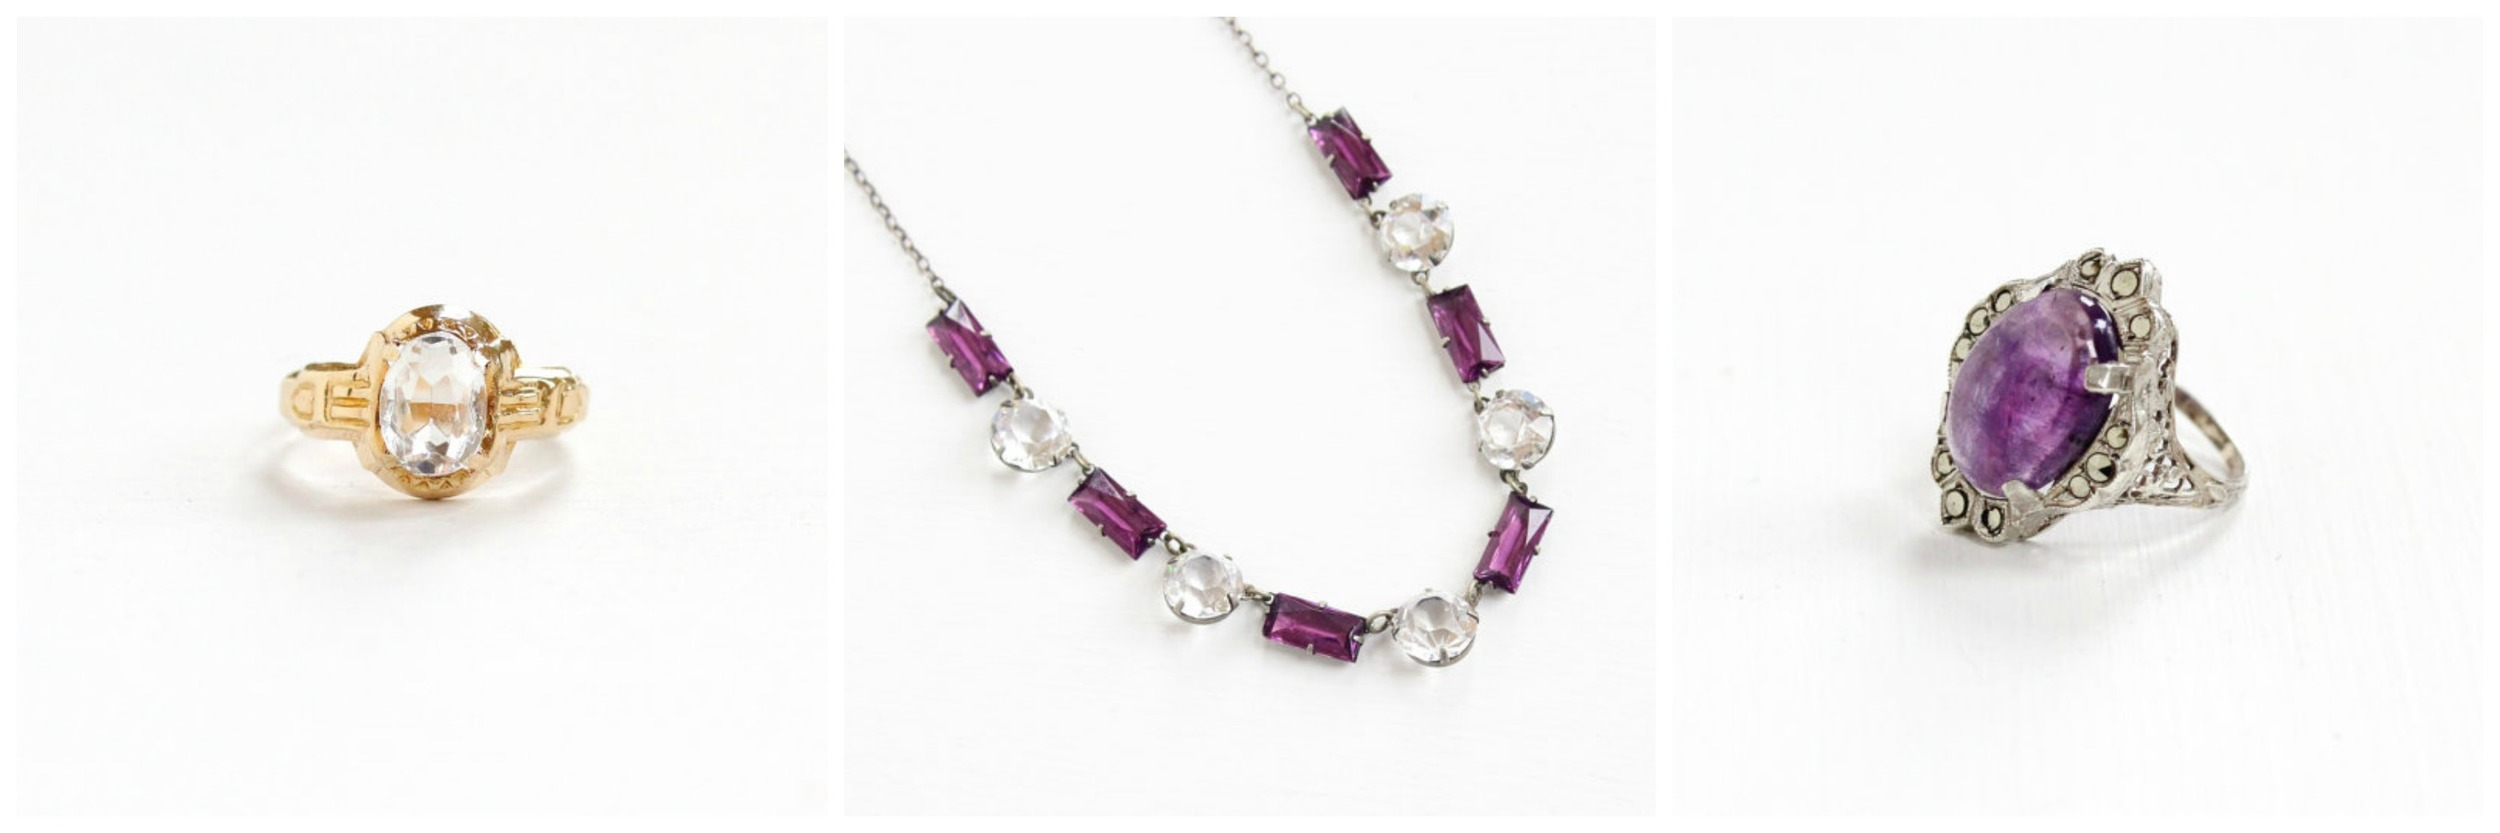 Simulated  White Topaz Ring , Simulated Amethyst  White Topaz Necklace , Genuine  Amethyst Ring